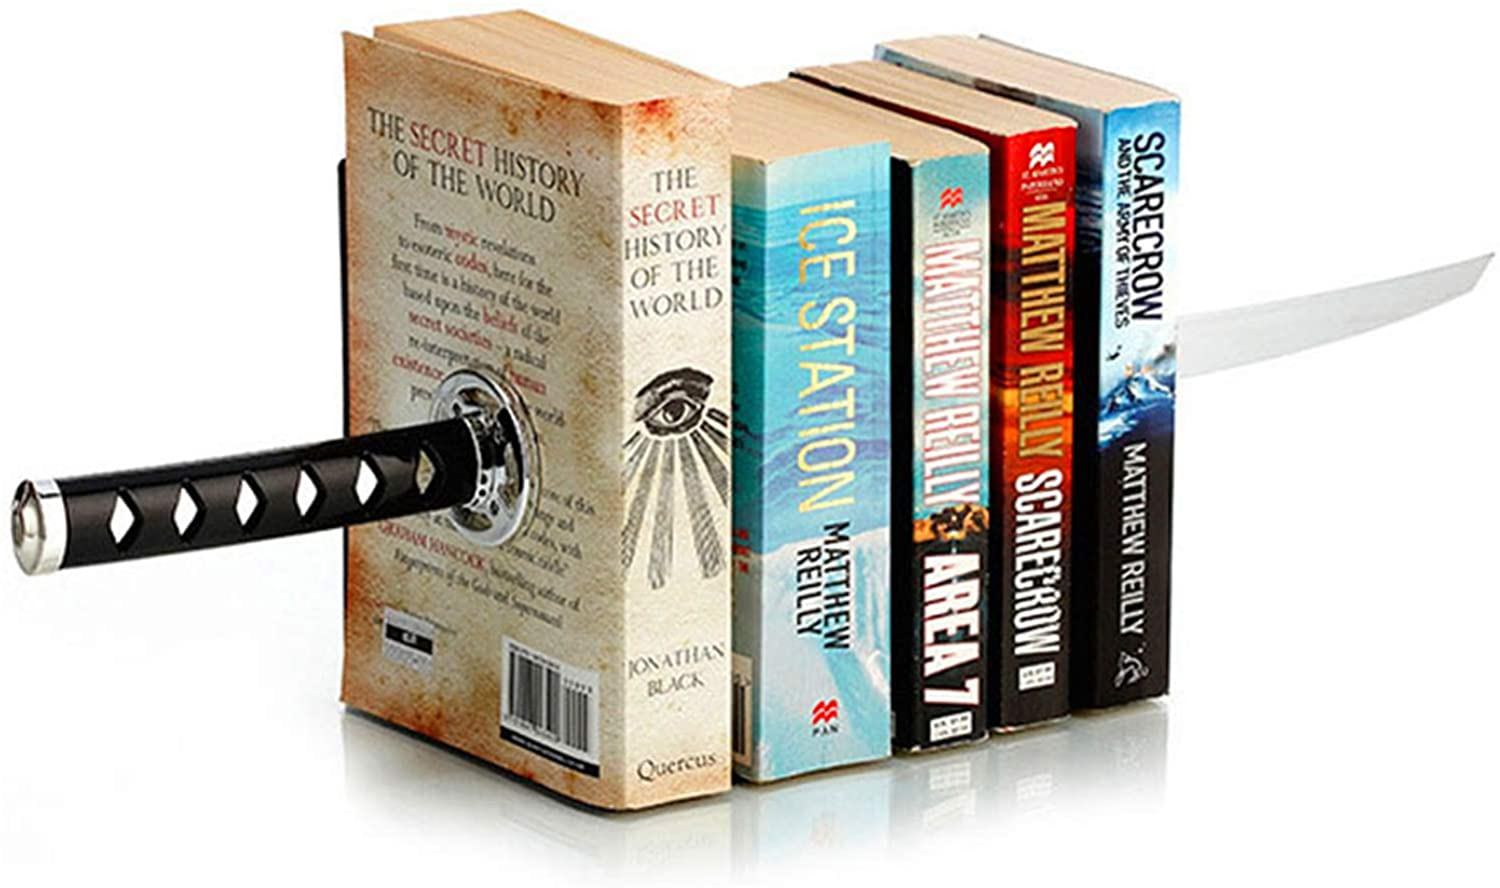 ZWCIBN Easy-to-use Ranking integrated 1st place Book Ends Decorative Modern Funny Unique DVD Black Metal